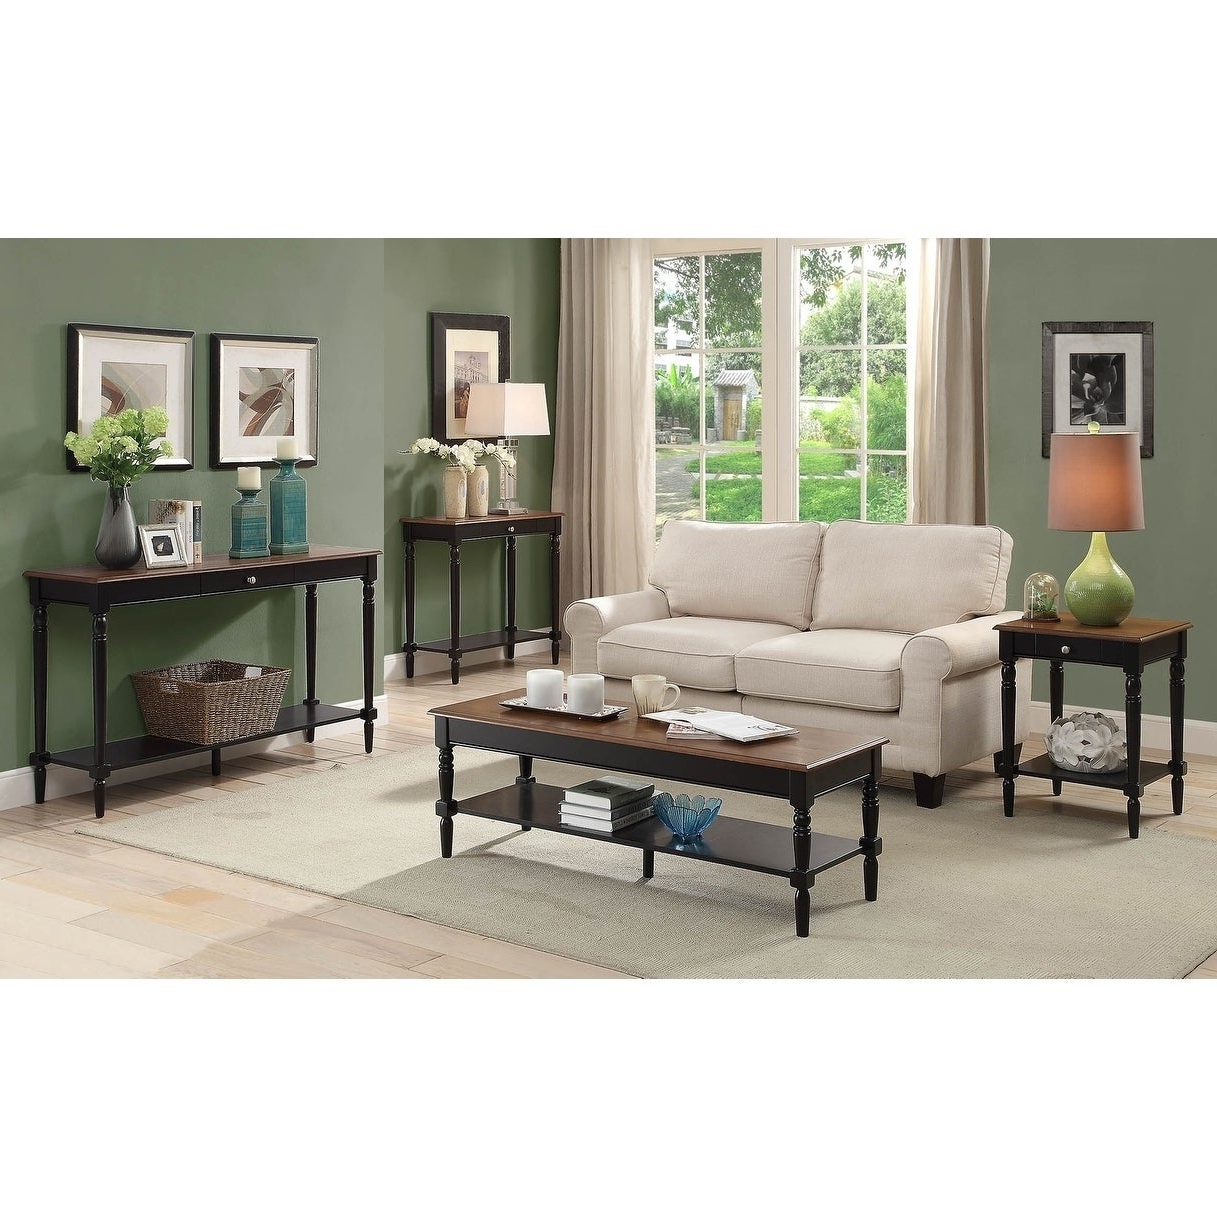 Most Recently Released Copper Grove Lantana Coffee Tables Pertaining To Copper Grove Lantana Wooden Two Tone Coffee Table (View 14 of 20)